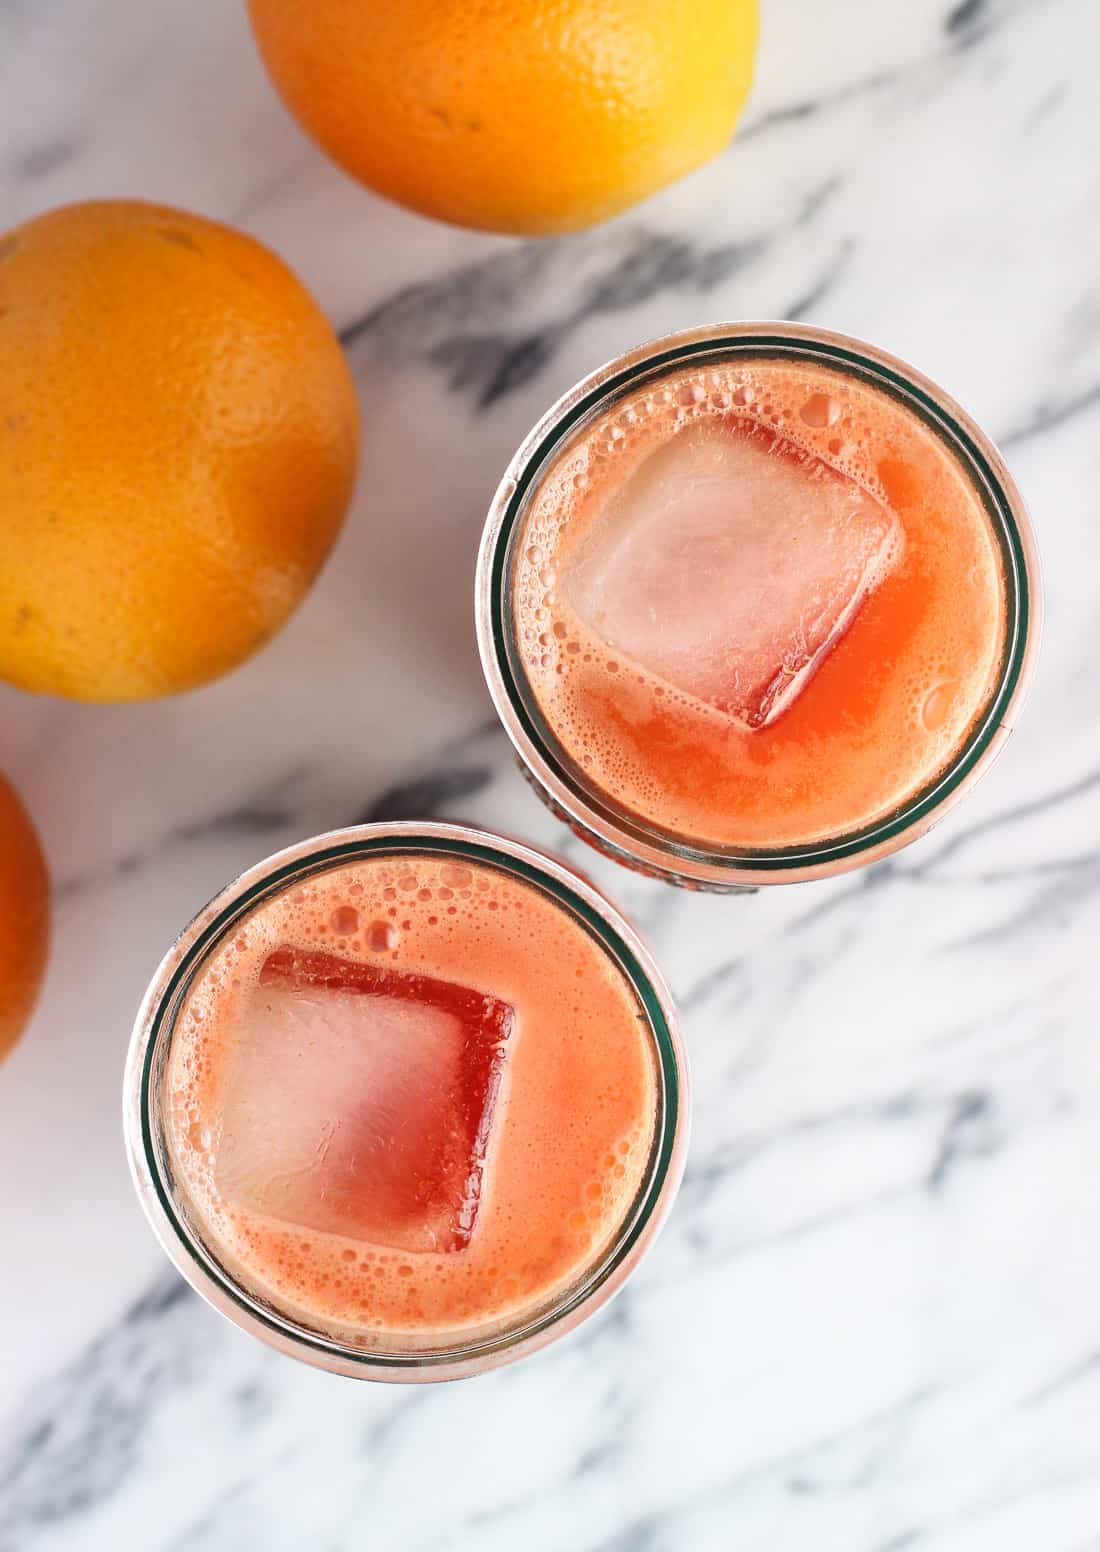 Big ice cubes floating in two glasses of juice.